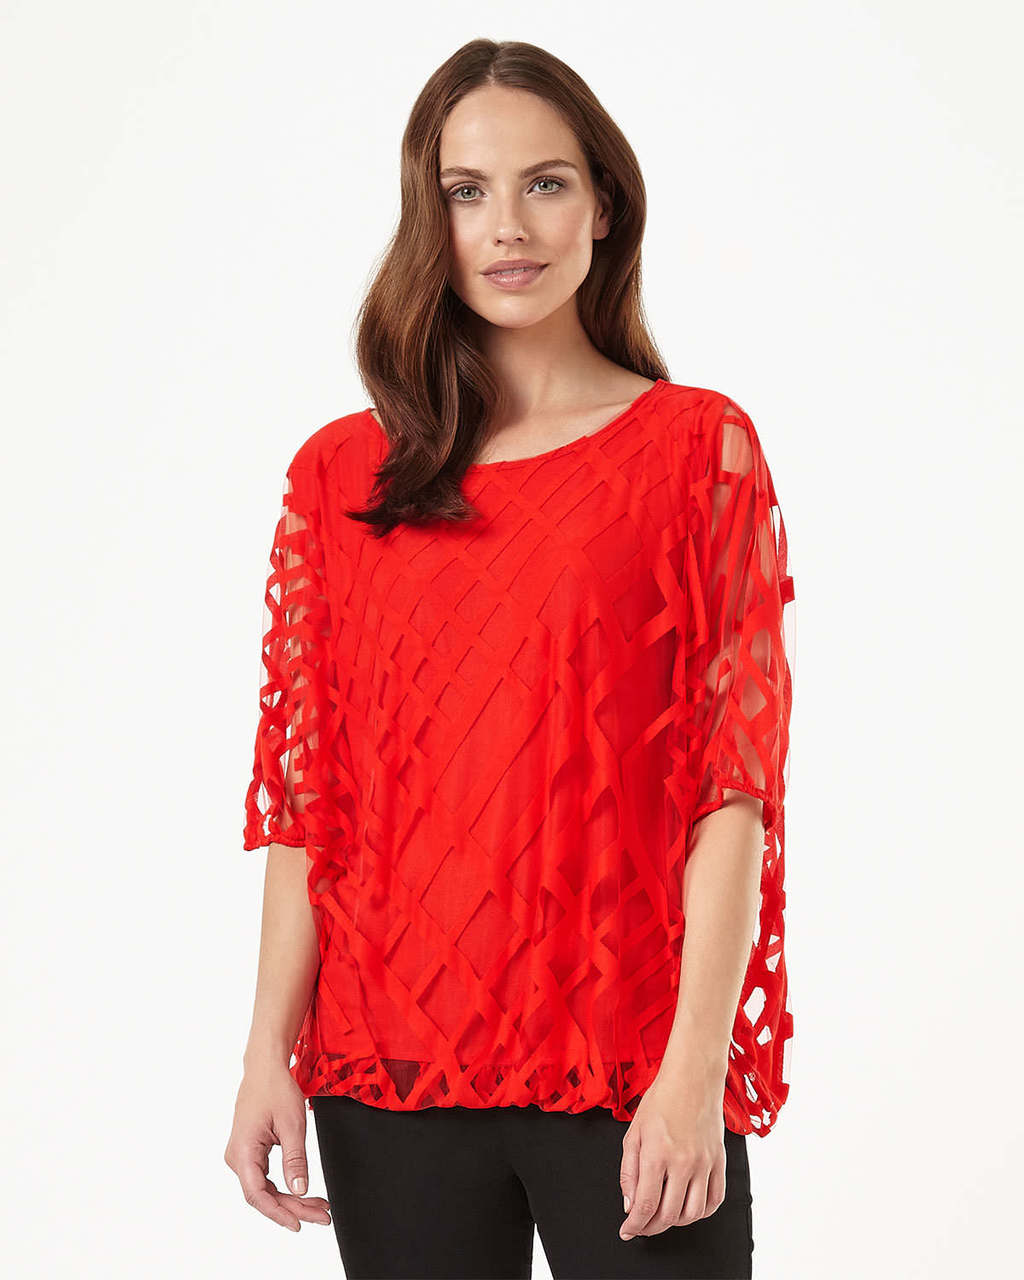 Eve Geo Burnout Top - neckline: round neck; pattern: plain; predominant colour: bright orange; occasions: evening; length: standard; style: top; fibres: polyester/polyamide - 100%; fit: loose; sleeve length: short sleeve; sleeve style: standard; texture group: sheer fabrics/chiffon/organza etc.; pattern type: fabric; embellishment: lace; season: s/s 2016; wardrobe: event